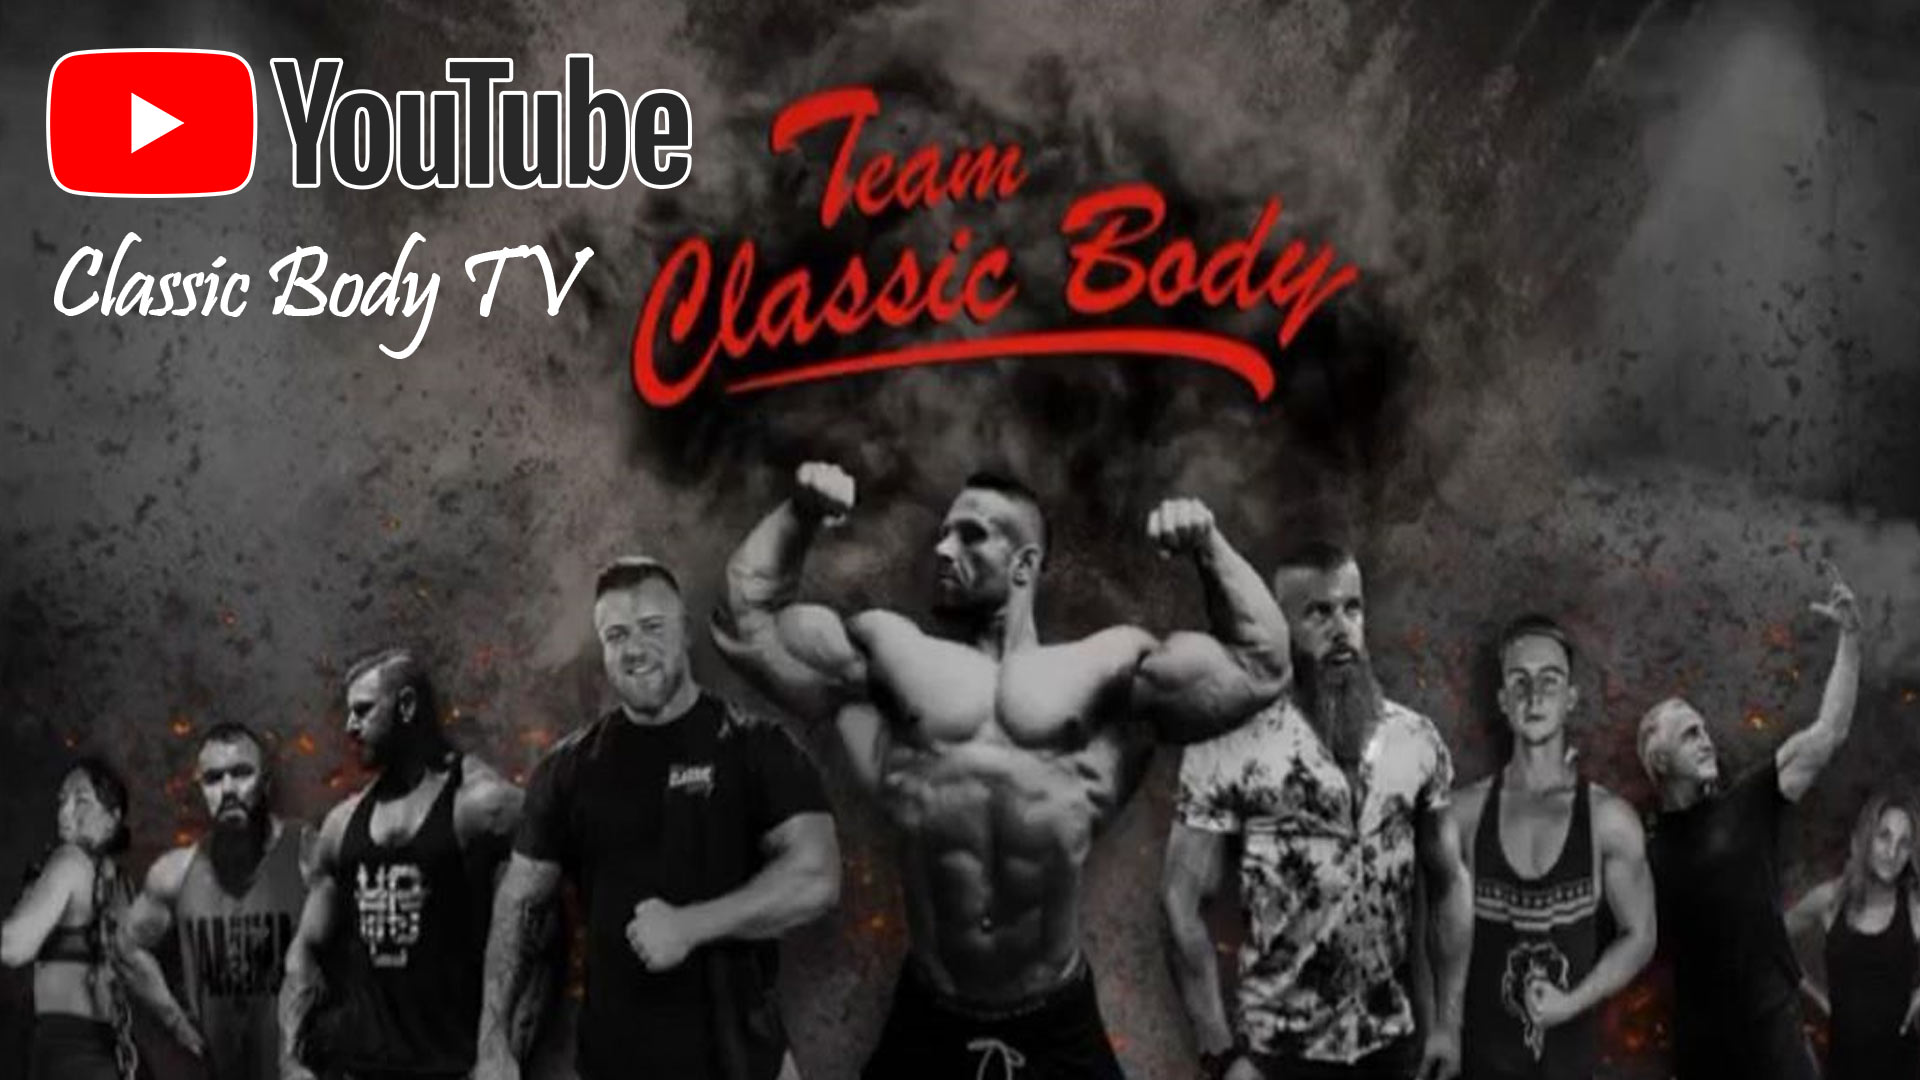 Classic Body TV: Neuer YouTube Kanal